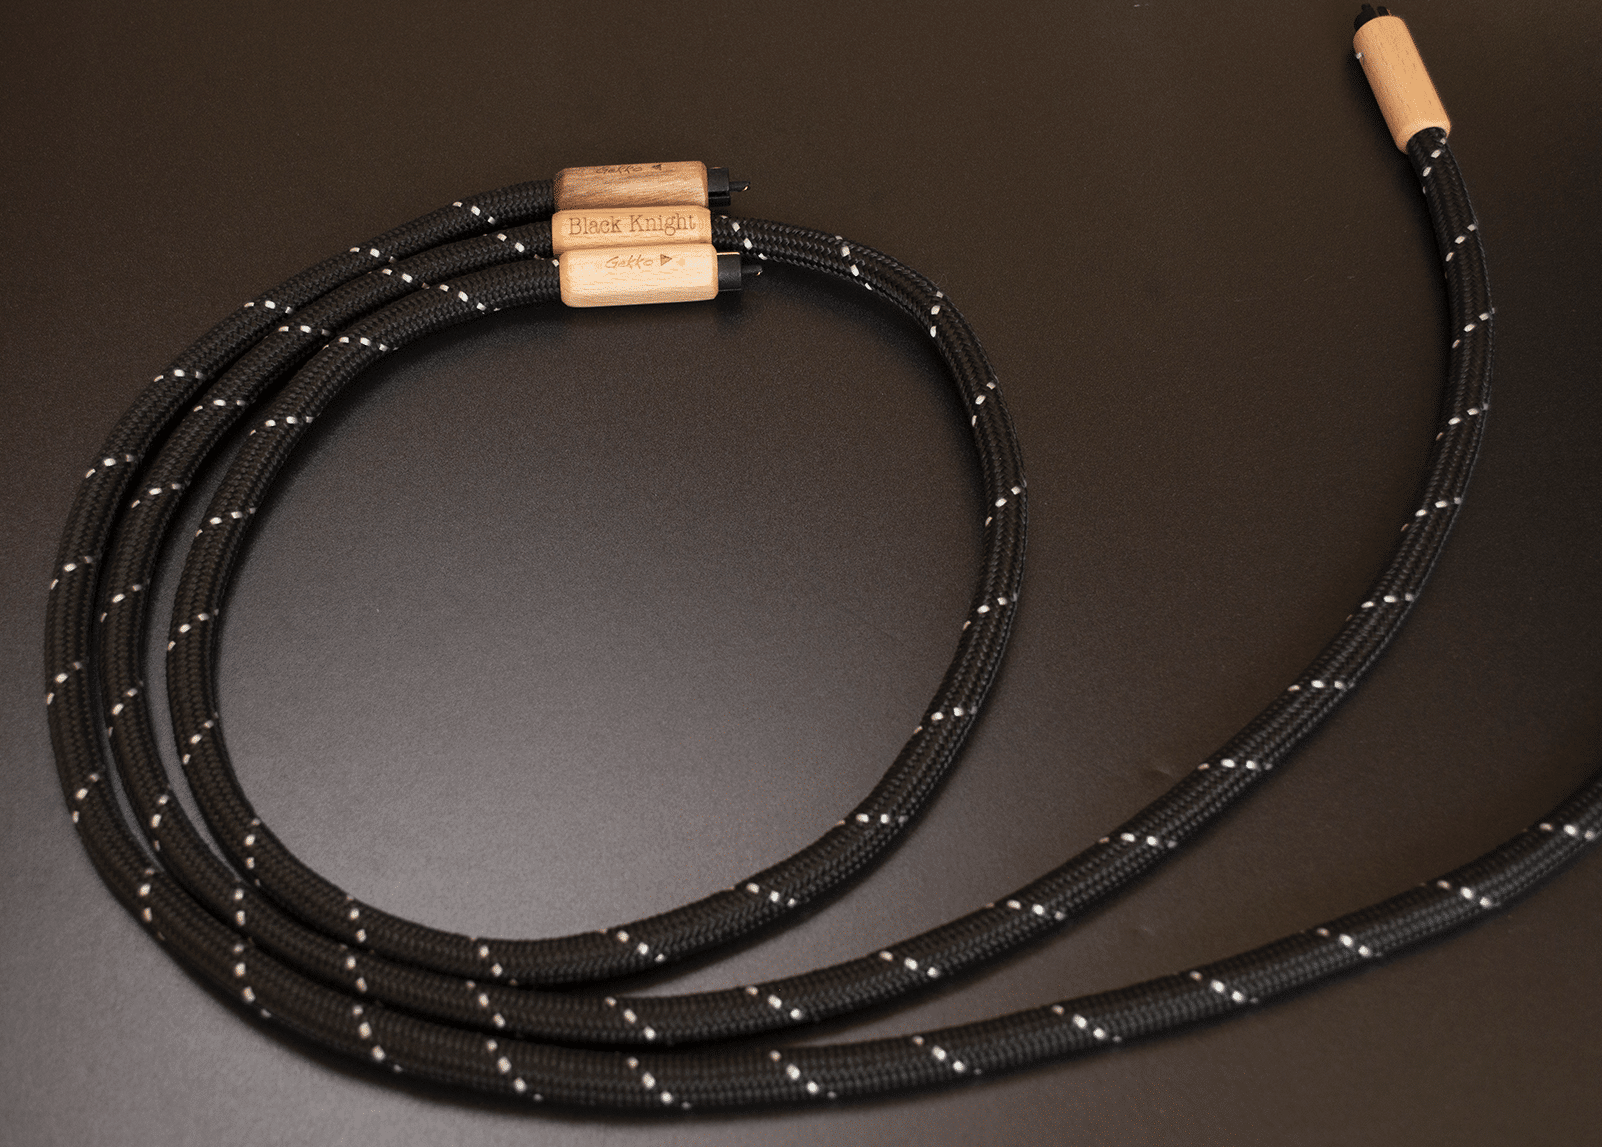 Black Knight Interconnect Cables By Gekko